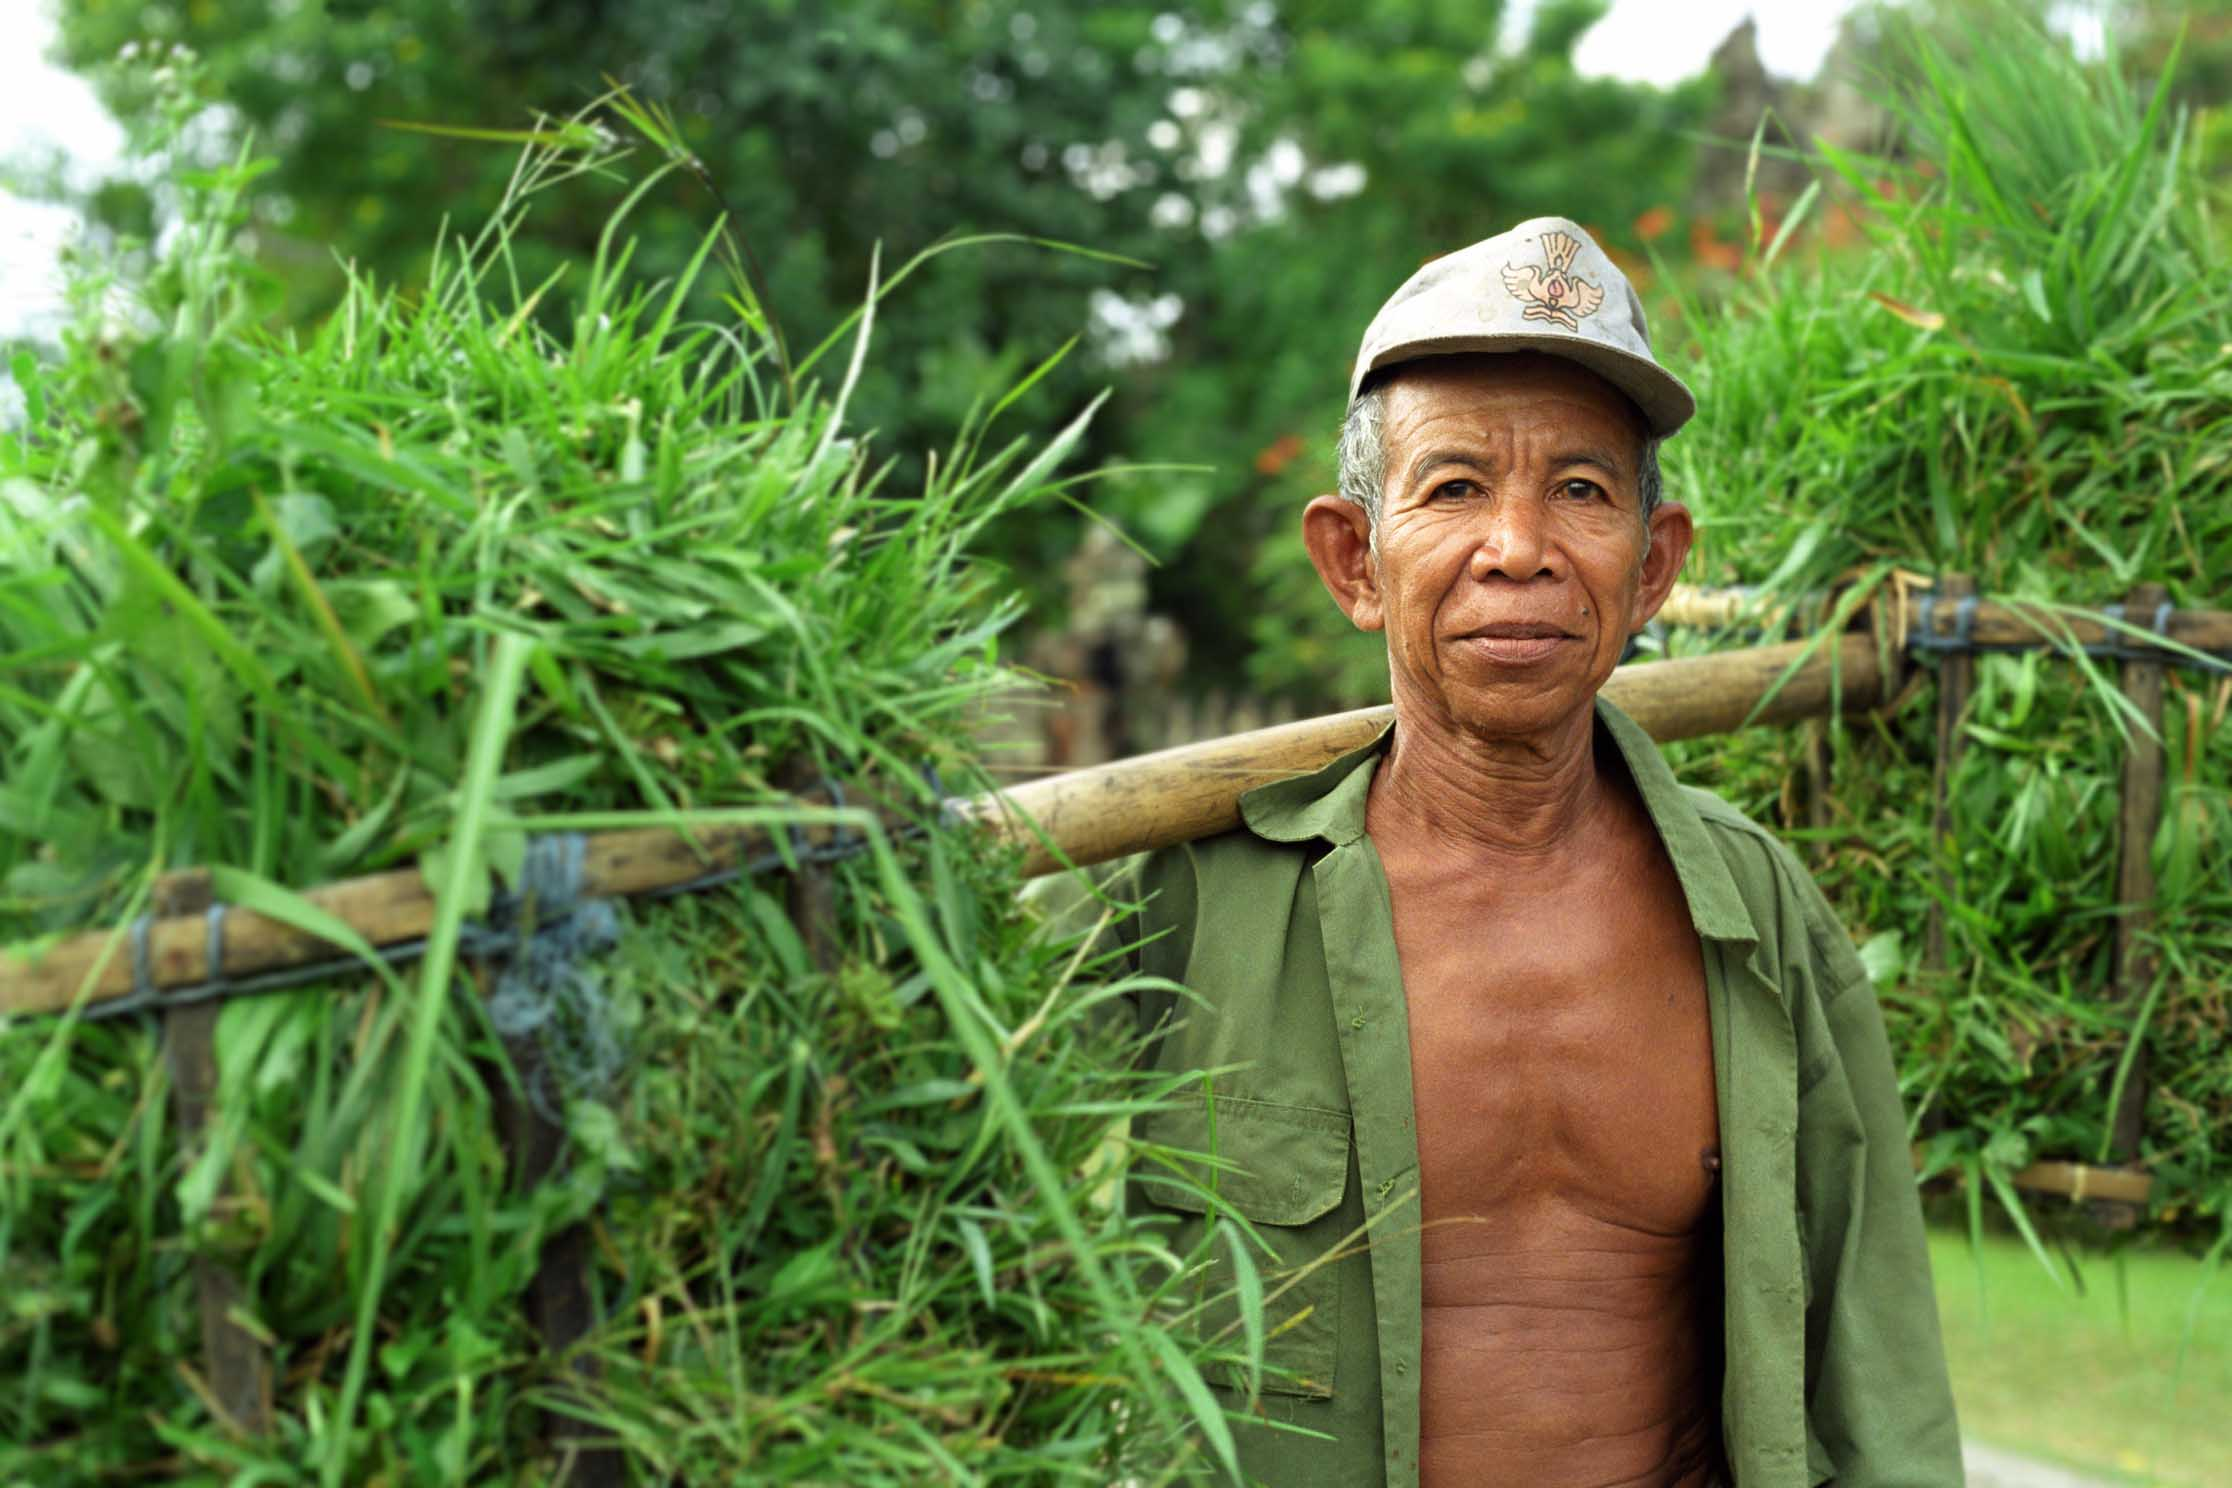 Farmer at work, Bali, Indonesia